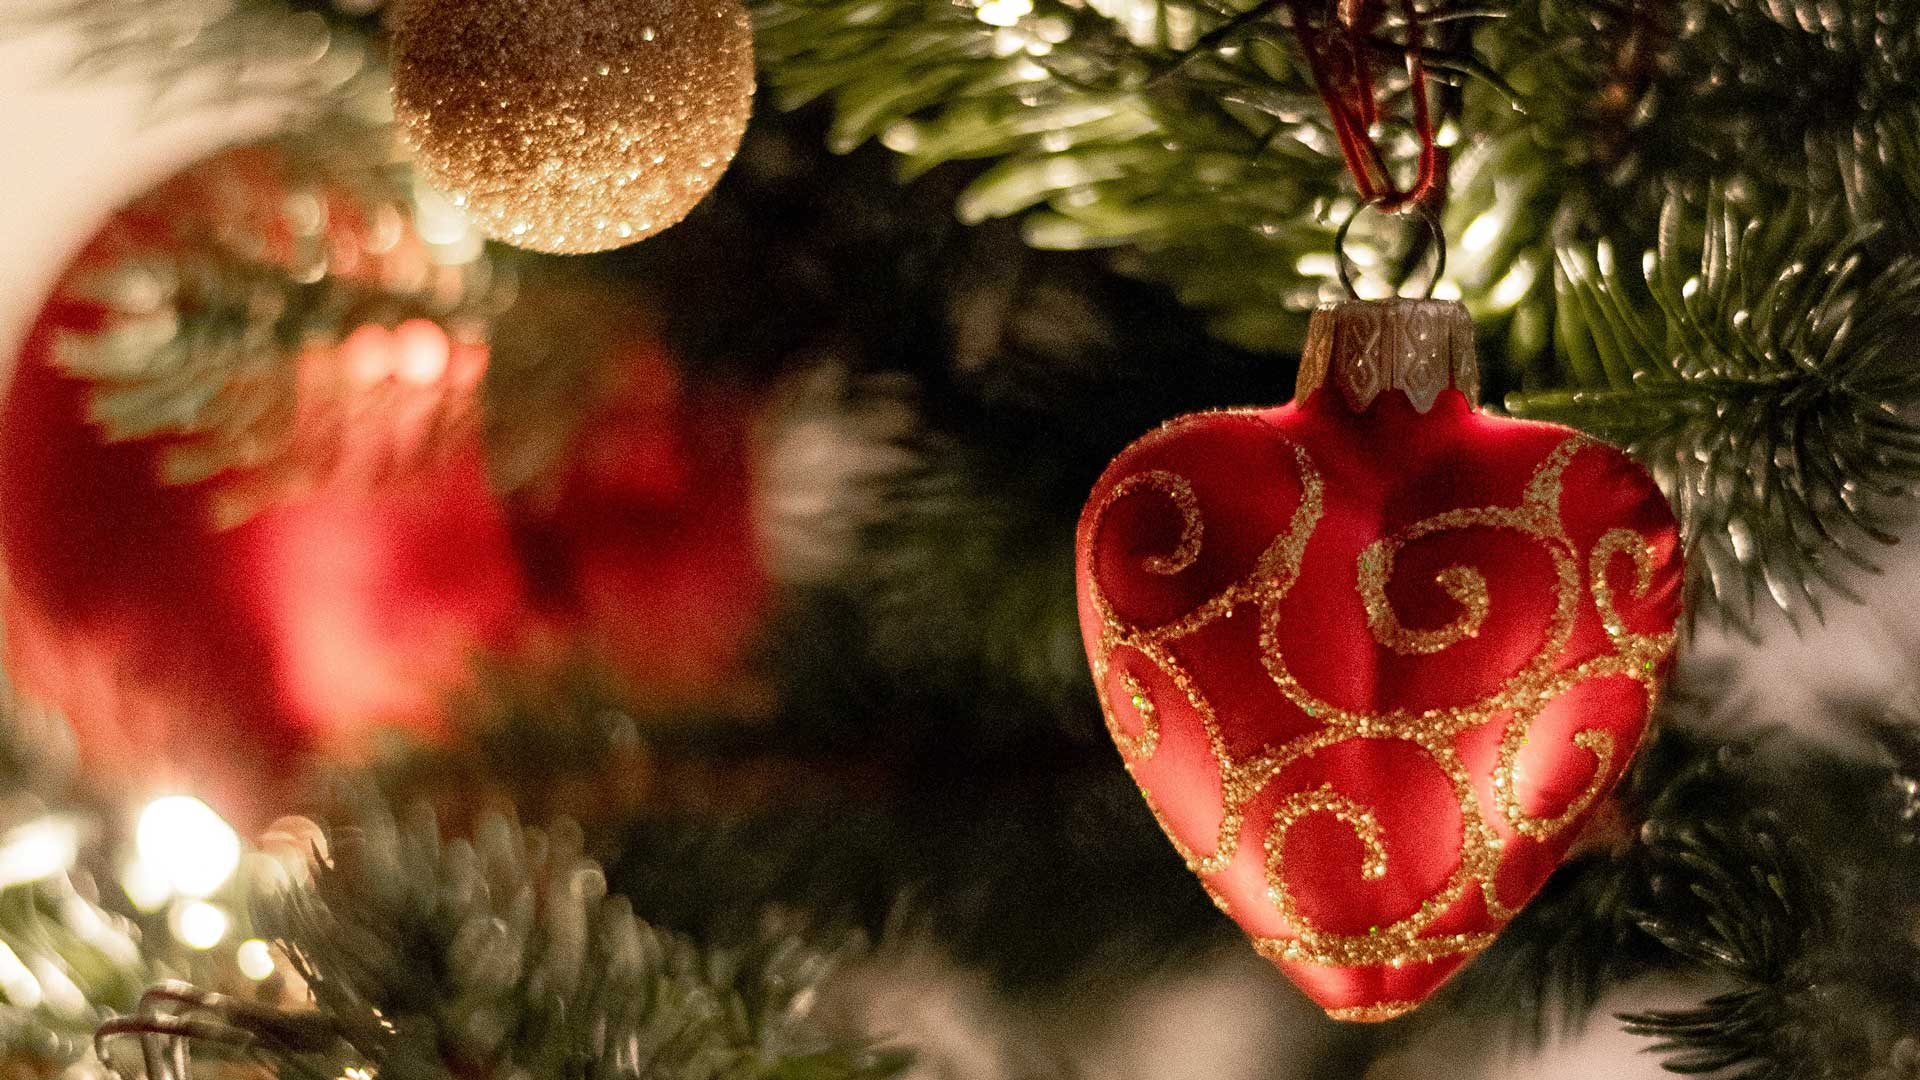 Close up image of Christmas tree with red, heart-shaped ornament in foreground